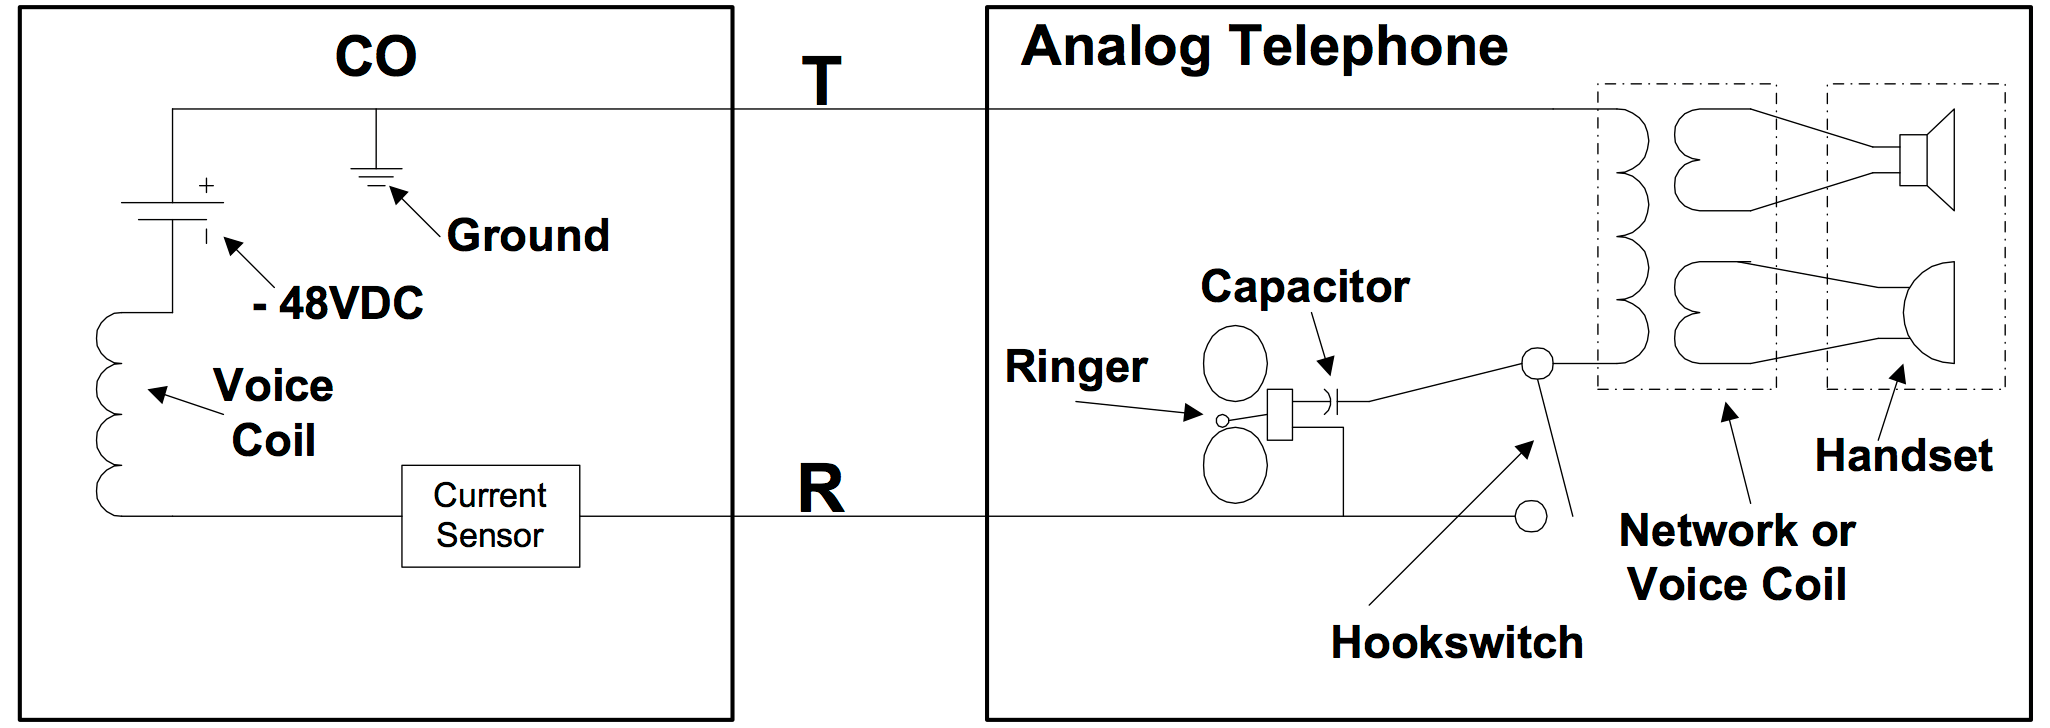 fig 5 all about analog lines Residential Telephone Wiring Diagram at mr168.co